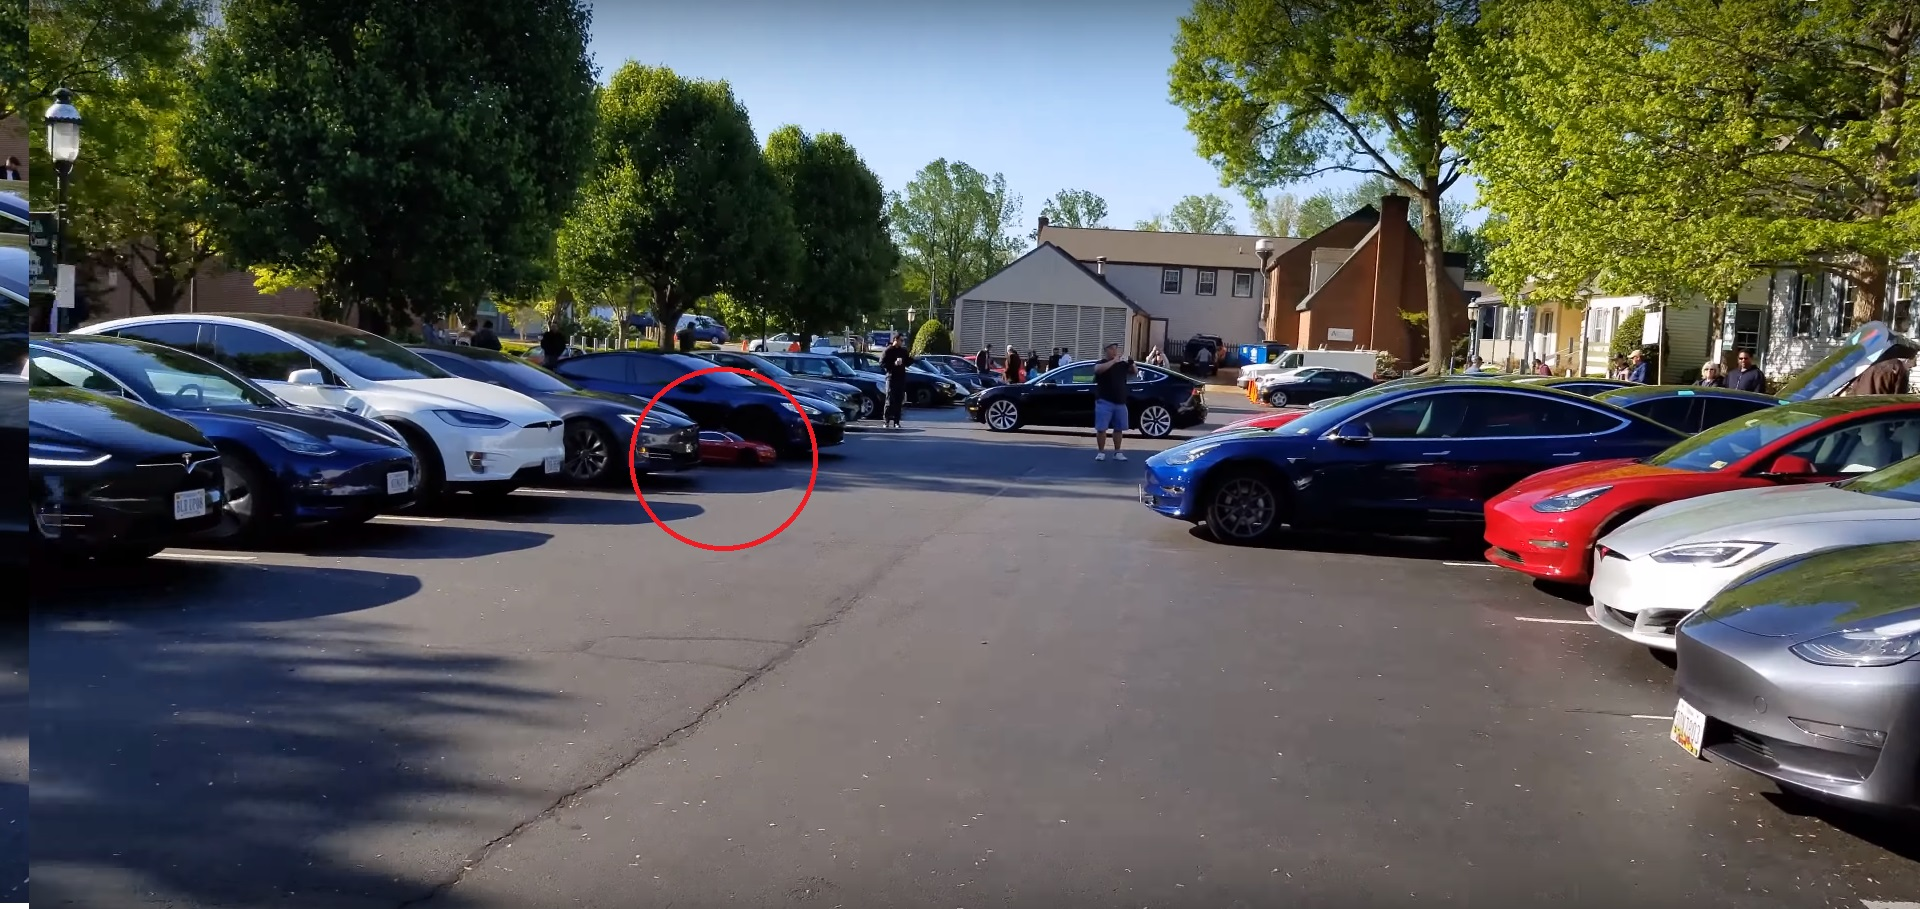 Tesla owners Summon a flash mob in parking lot antics